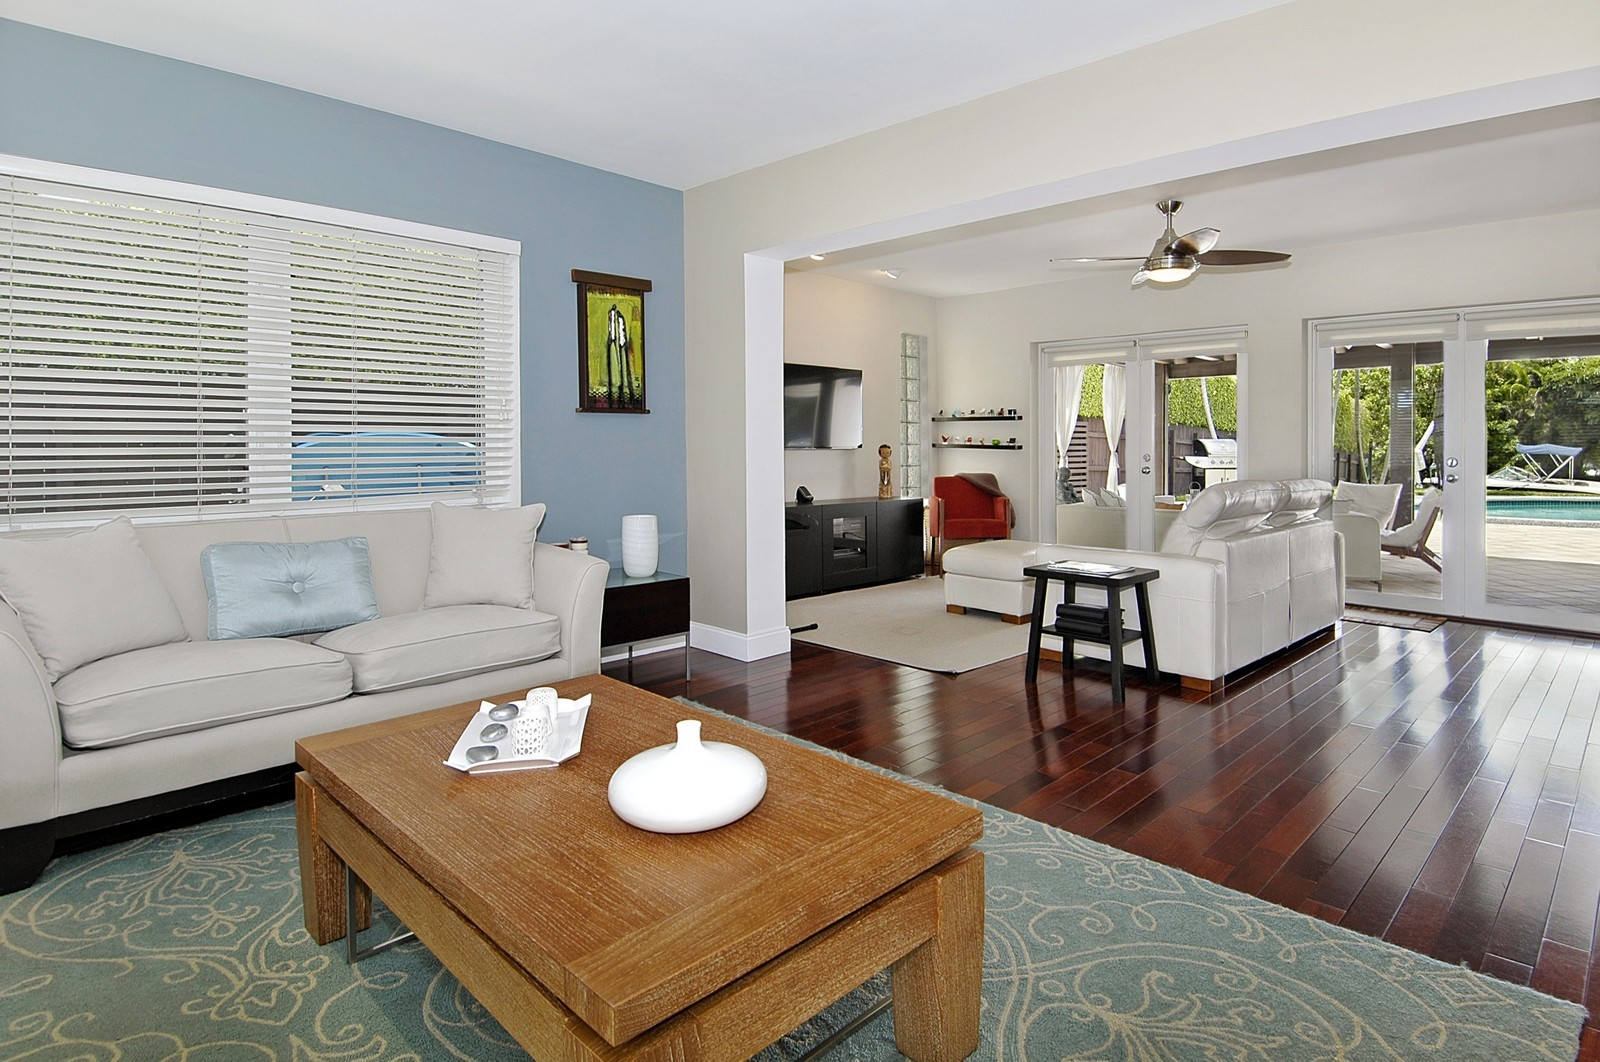 Real Estate Photography - 1500 Cleveland Rd, Miami Beach, FL, 33141 - Living Rm/Family Rm